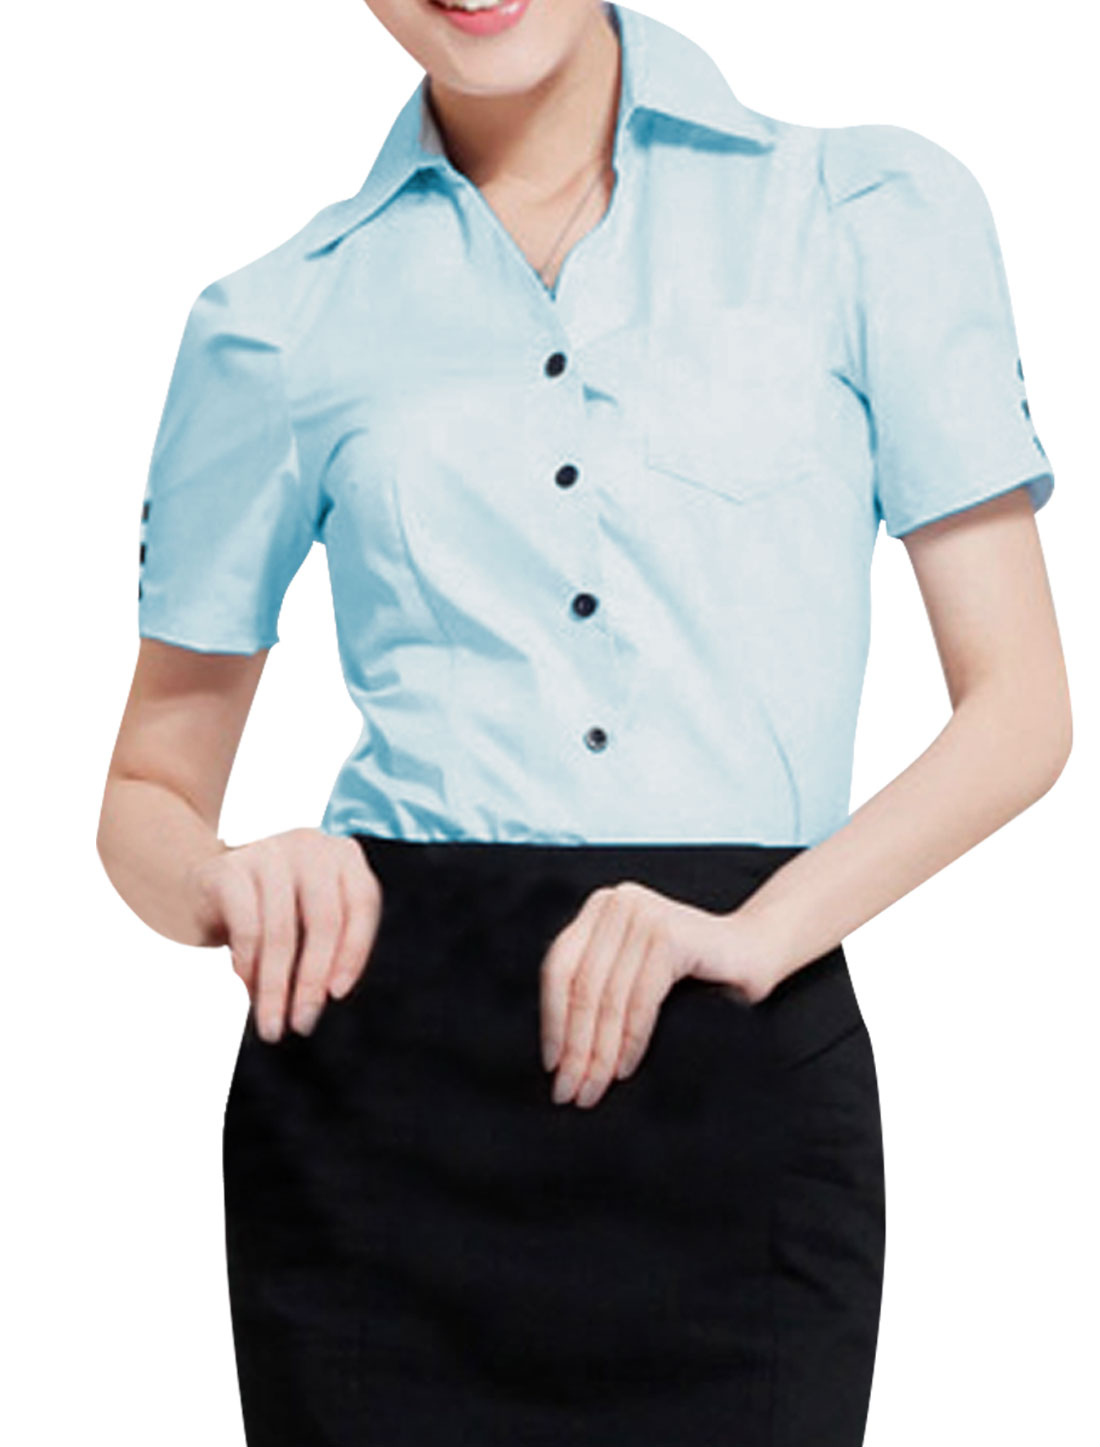 Women Single Breasted Puff Sleeve Casual Shirt Light Blue S